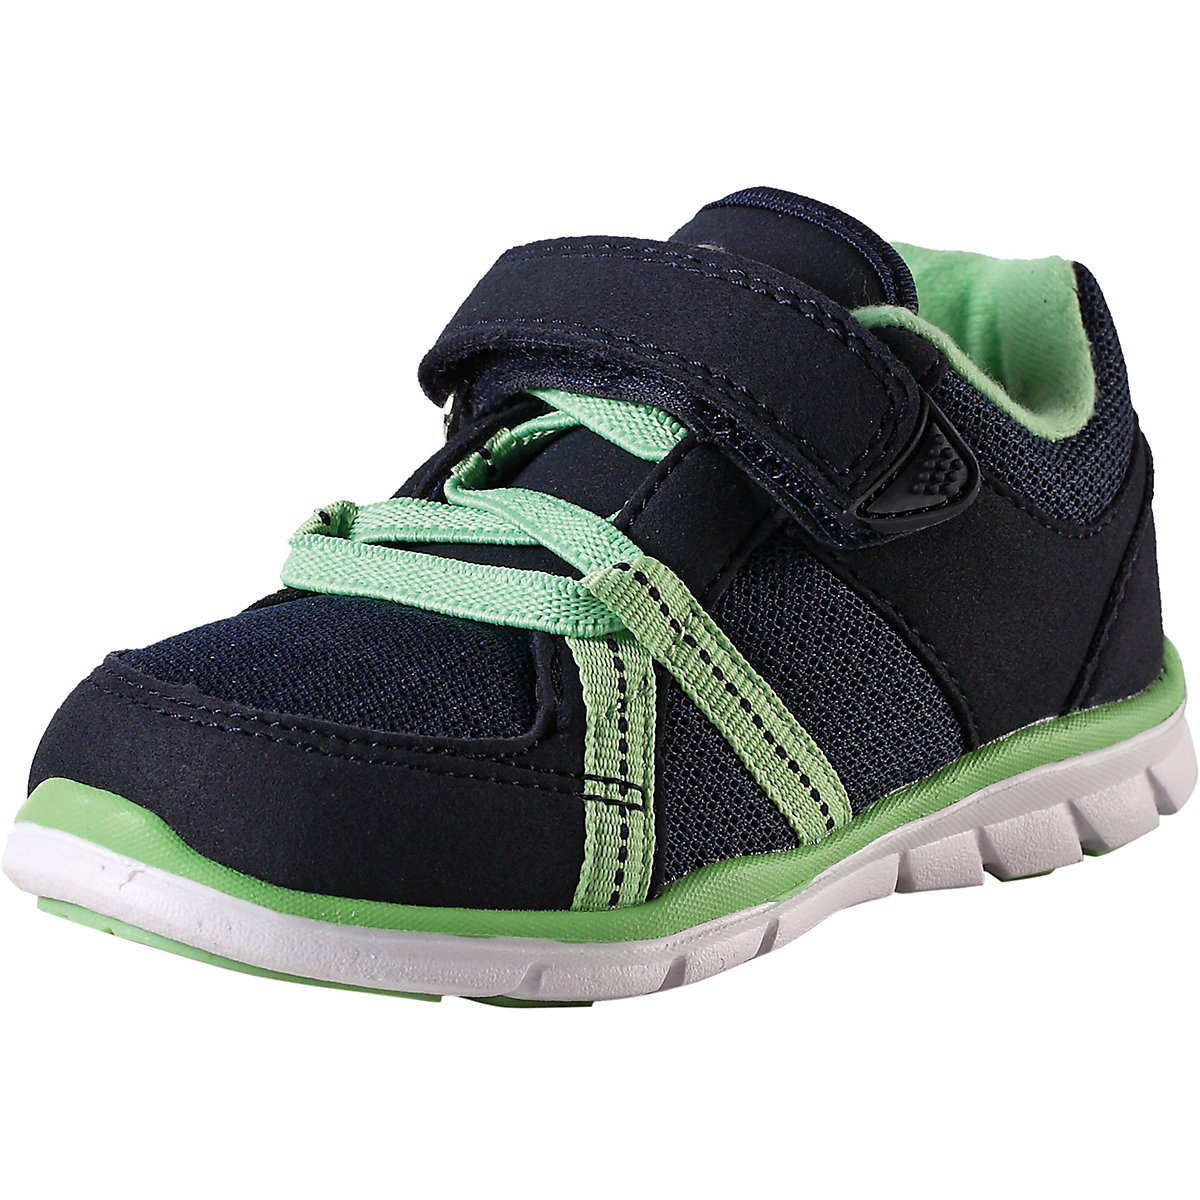 Baby Casual Shoes REIMA for girls 7797099 Checks Sneakers Slippers Home Macasins Baby Kids Glowing hot selling fashion sneakers women shoes tenis feminino casual shoes zapatillas deportivas mujer